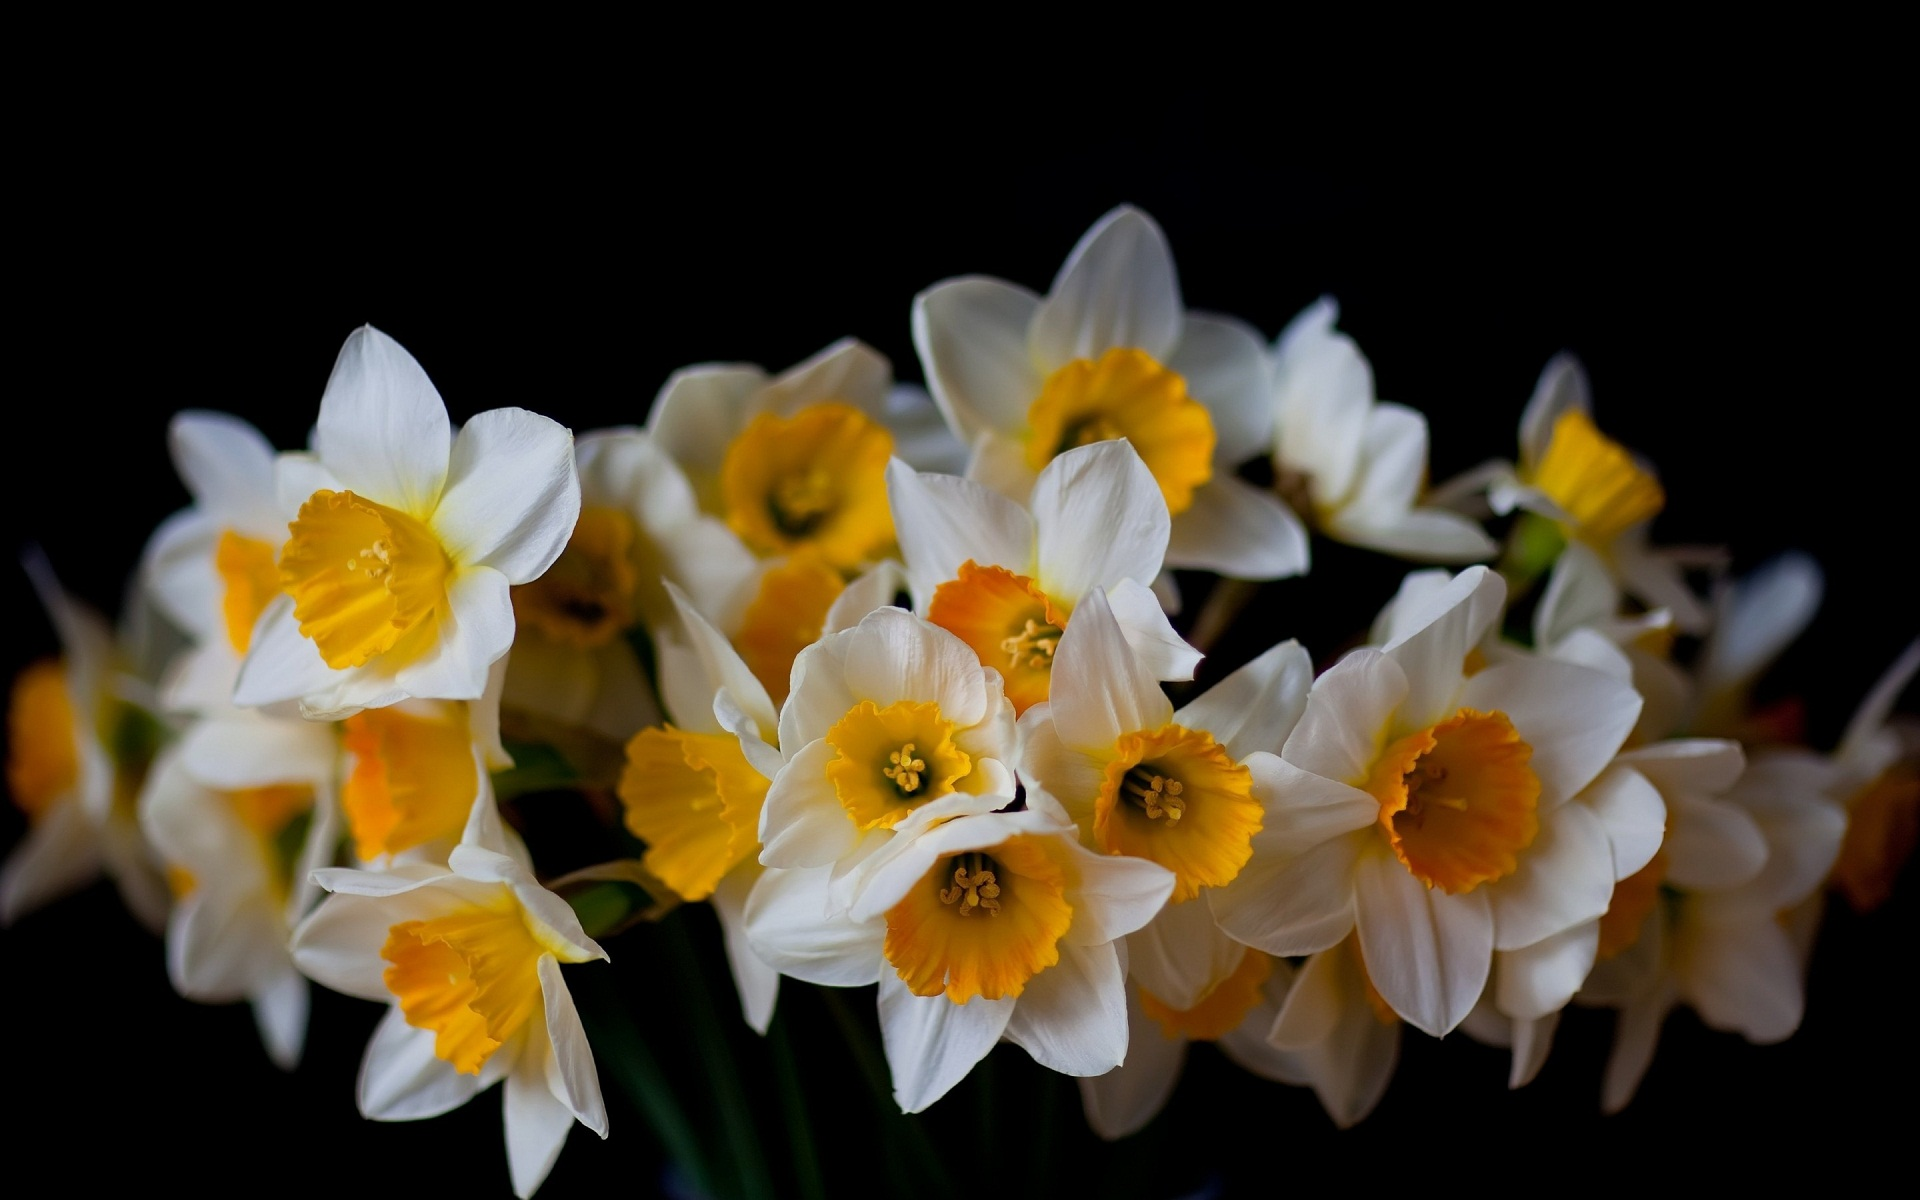 On BsnSCB Gallery: SYZ.11SYZ Pretty Daffodil, 284.45 Kb